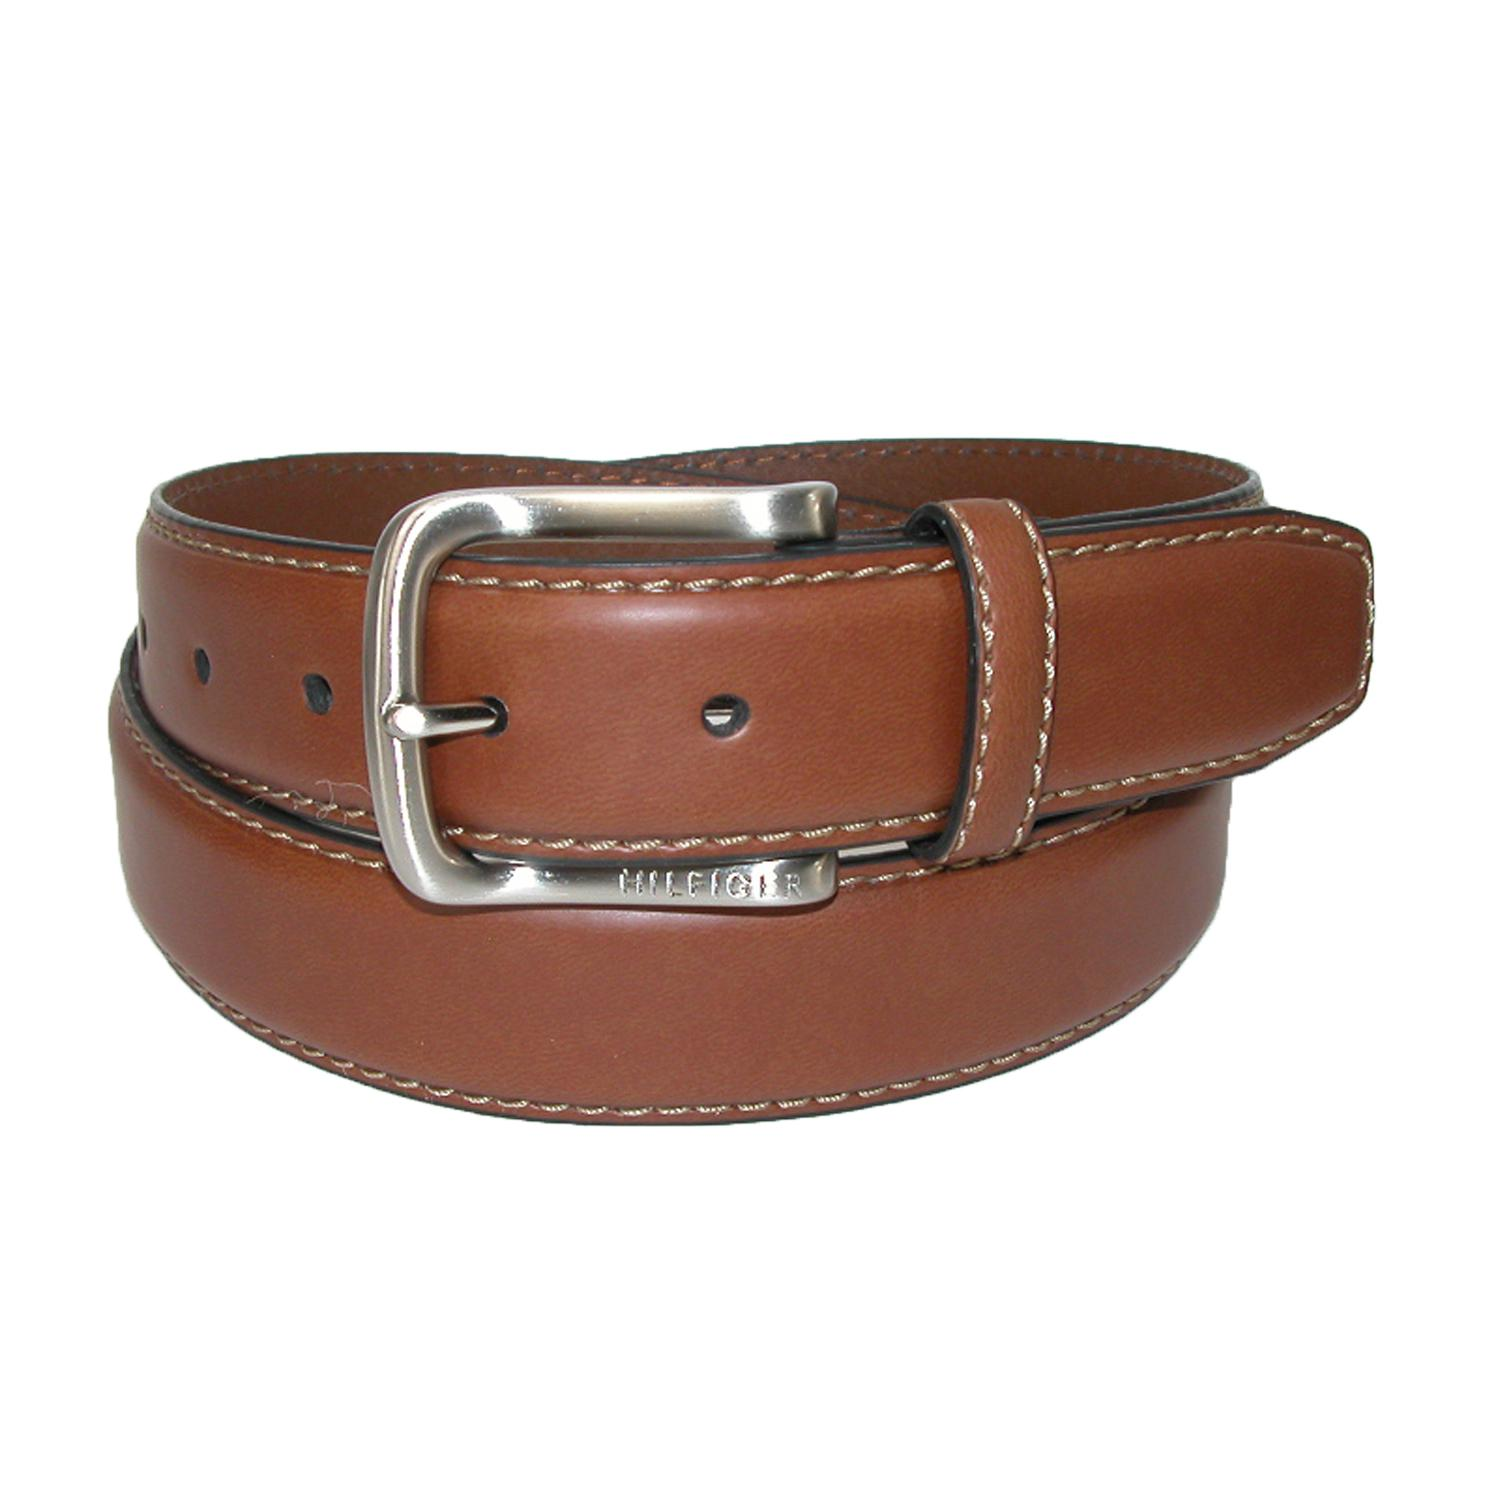 NEW Tommy Hilfiger Mens Leather Stitch Belt with Engraved LogoBrown32 SHIPS FREE